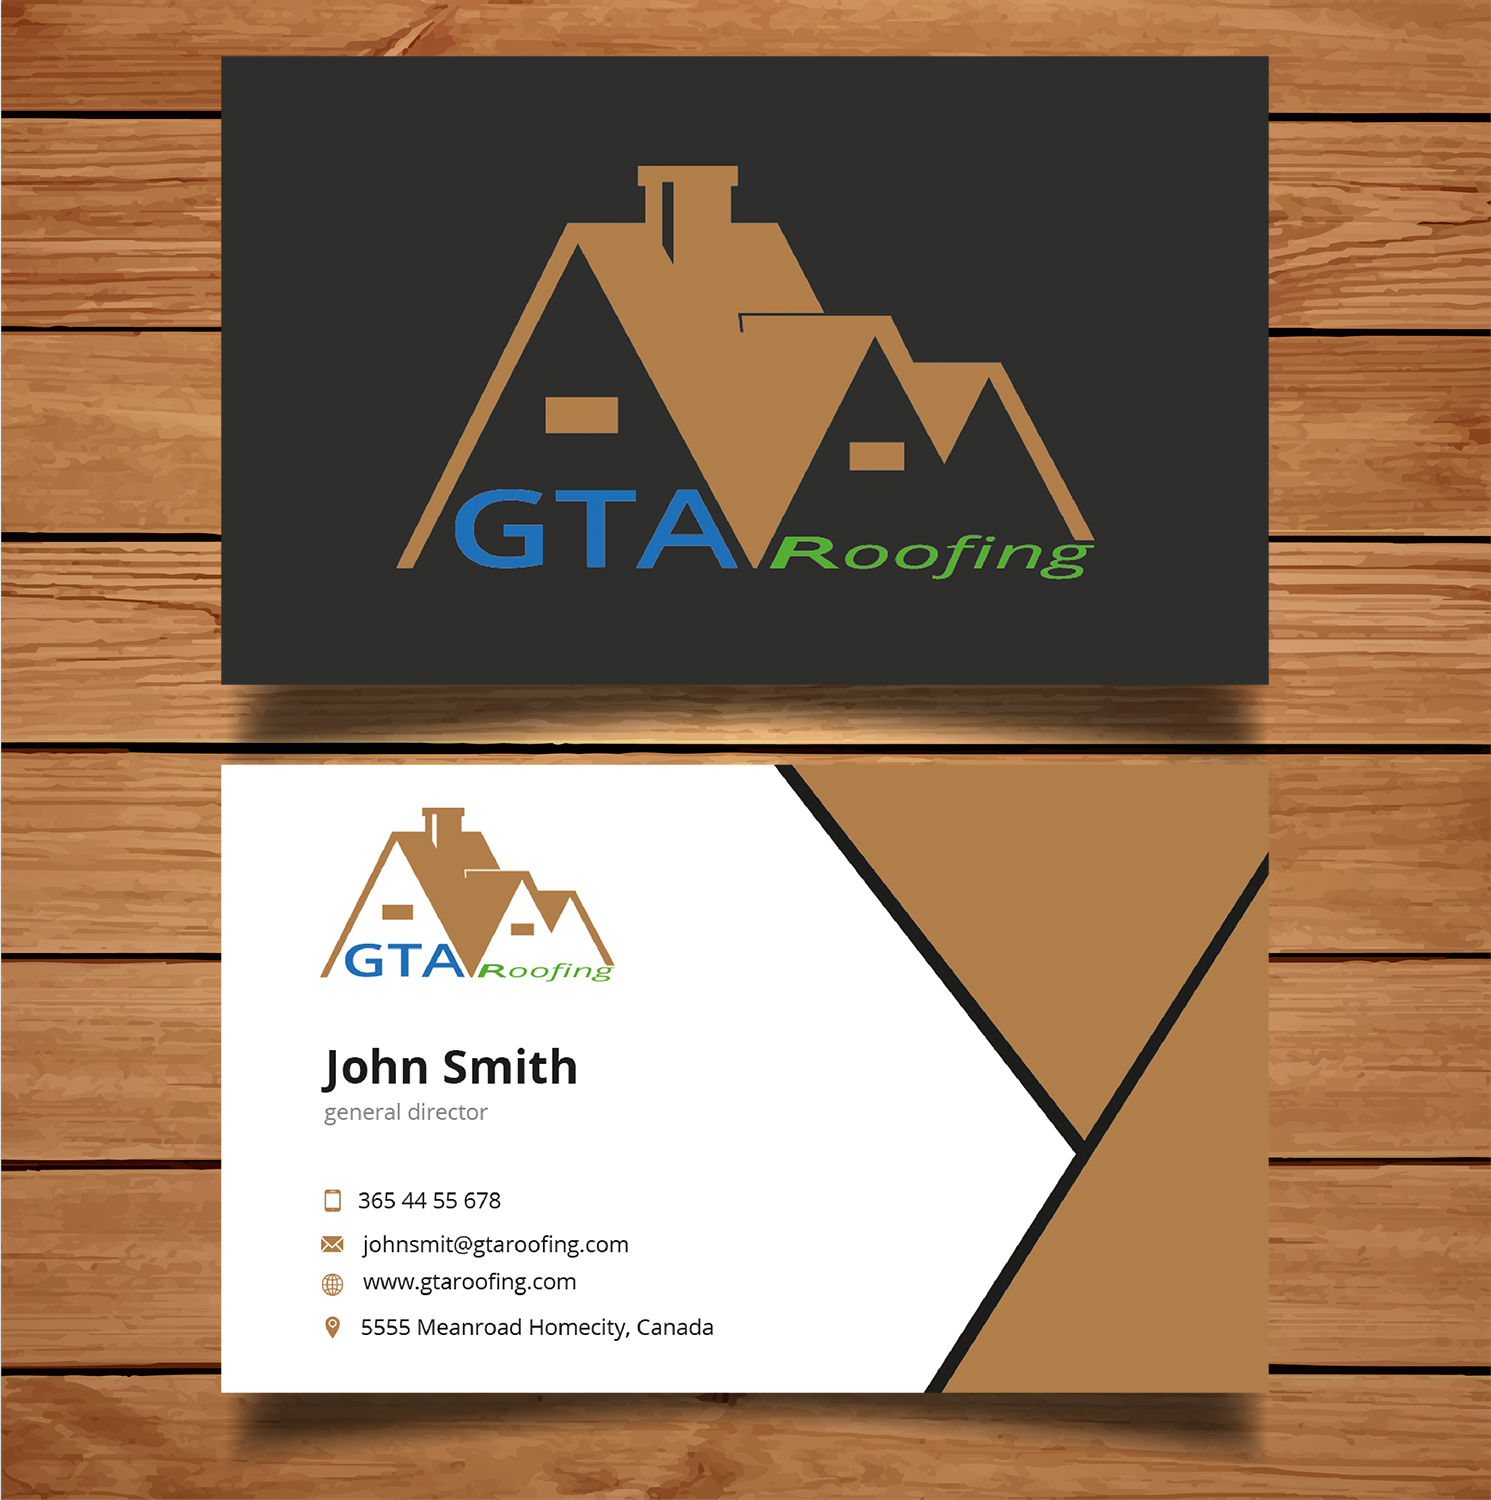 business card design by tanama creations for gta roofing design 14004521 - Roofing Business Cards